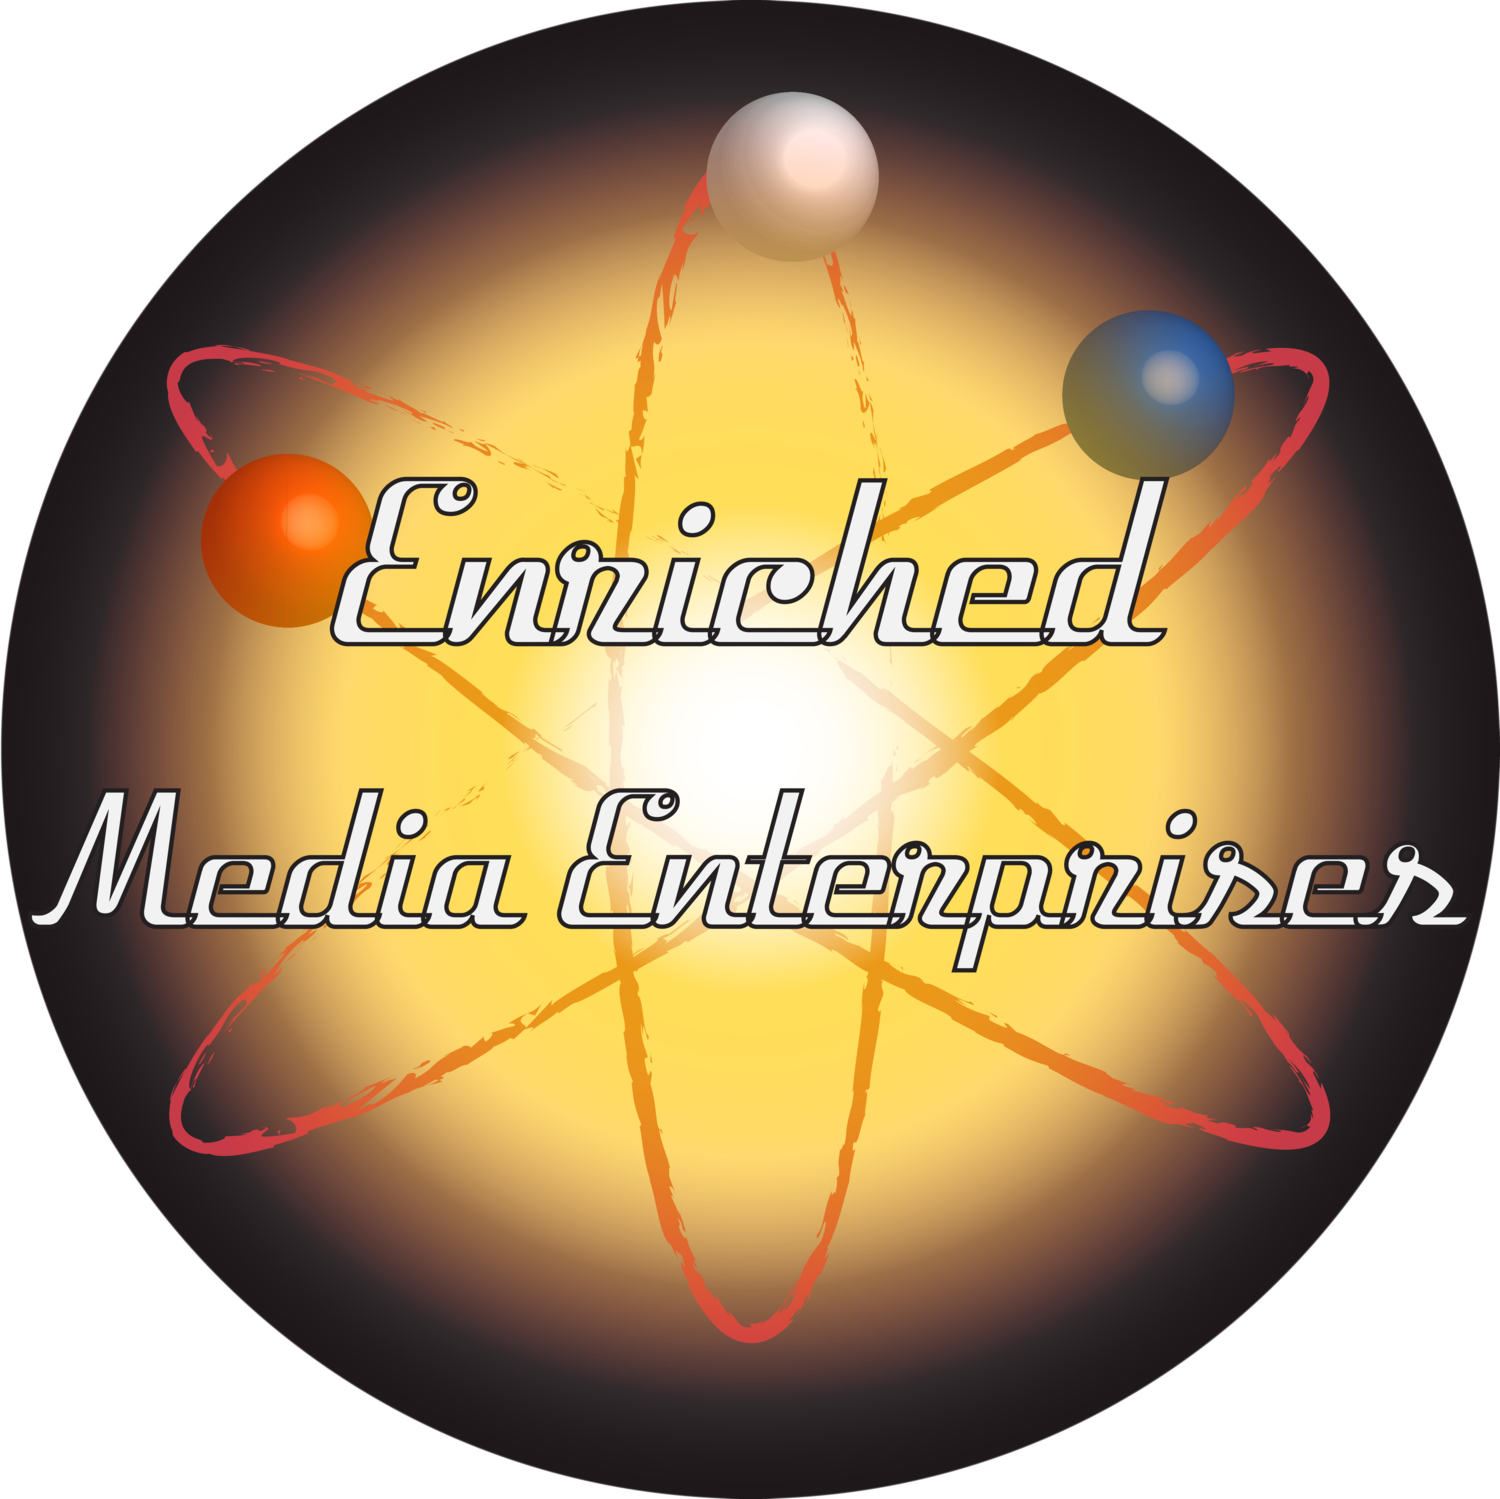 Enriched Media Enterprises